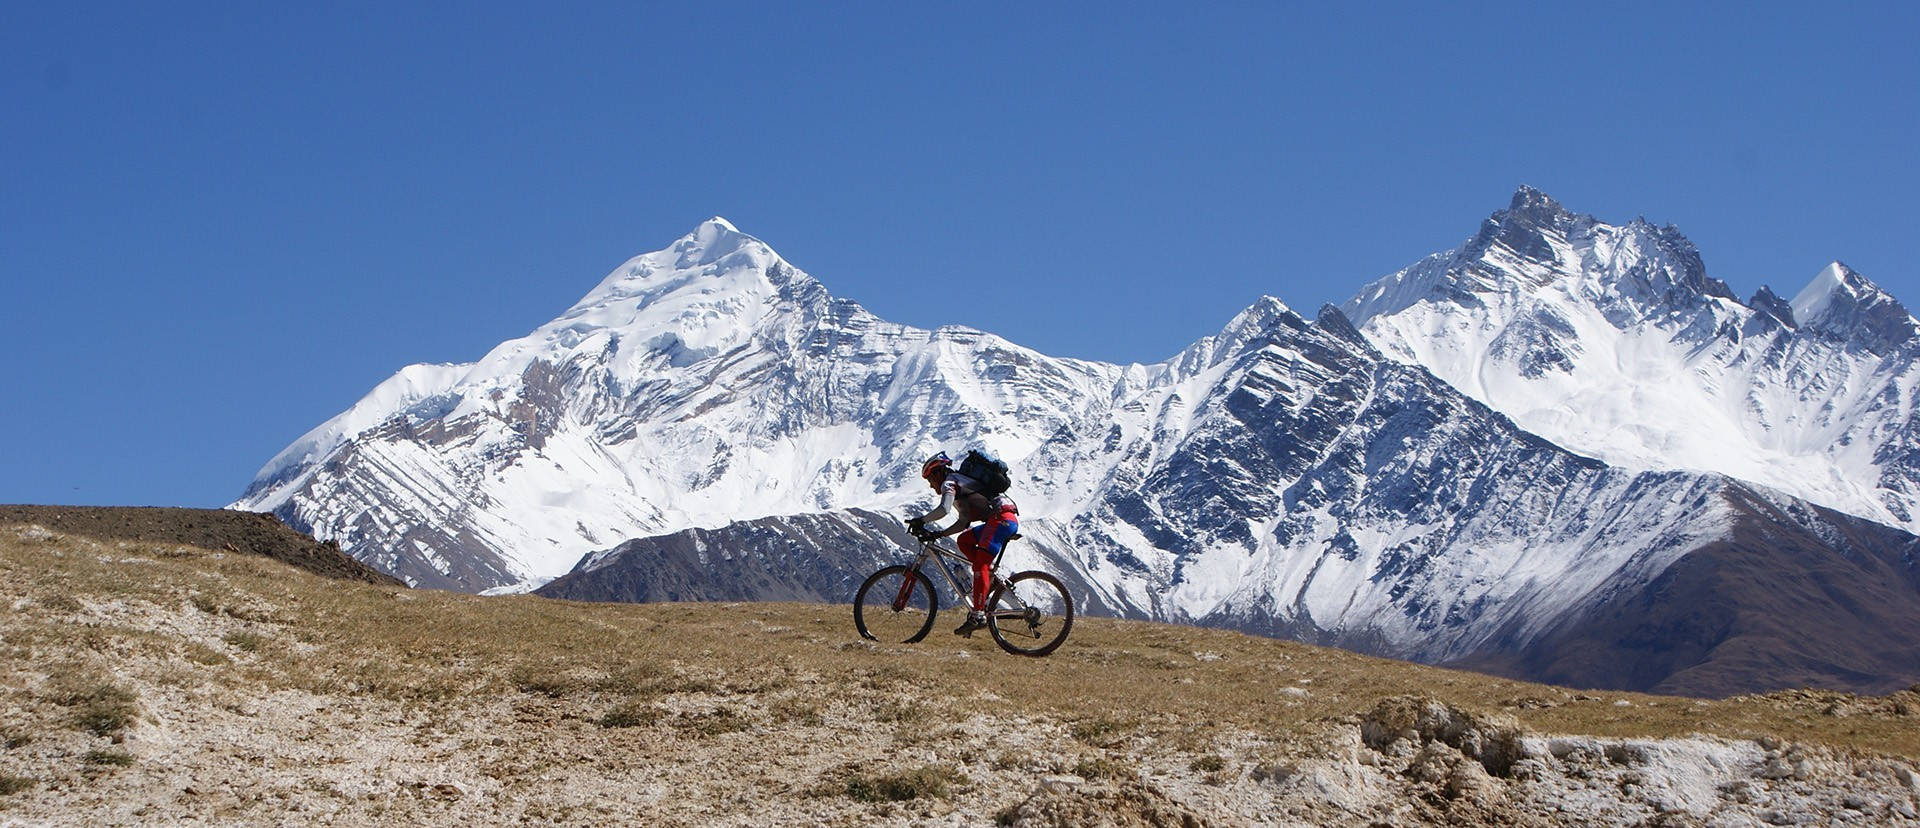 Mountain Biking Tours in the Himalayas